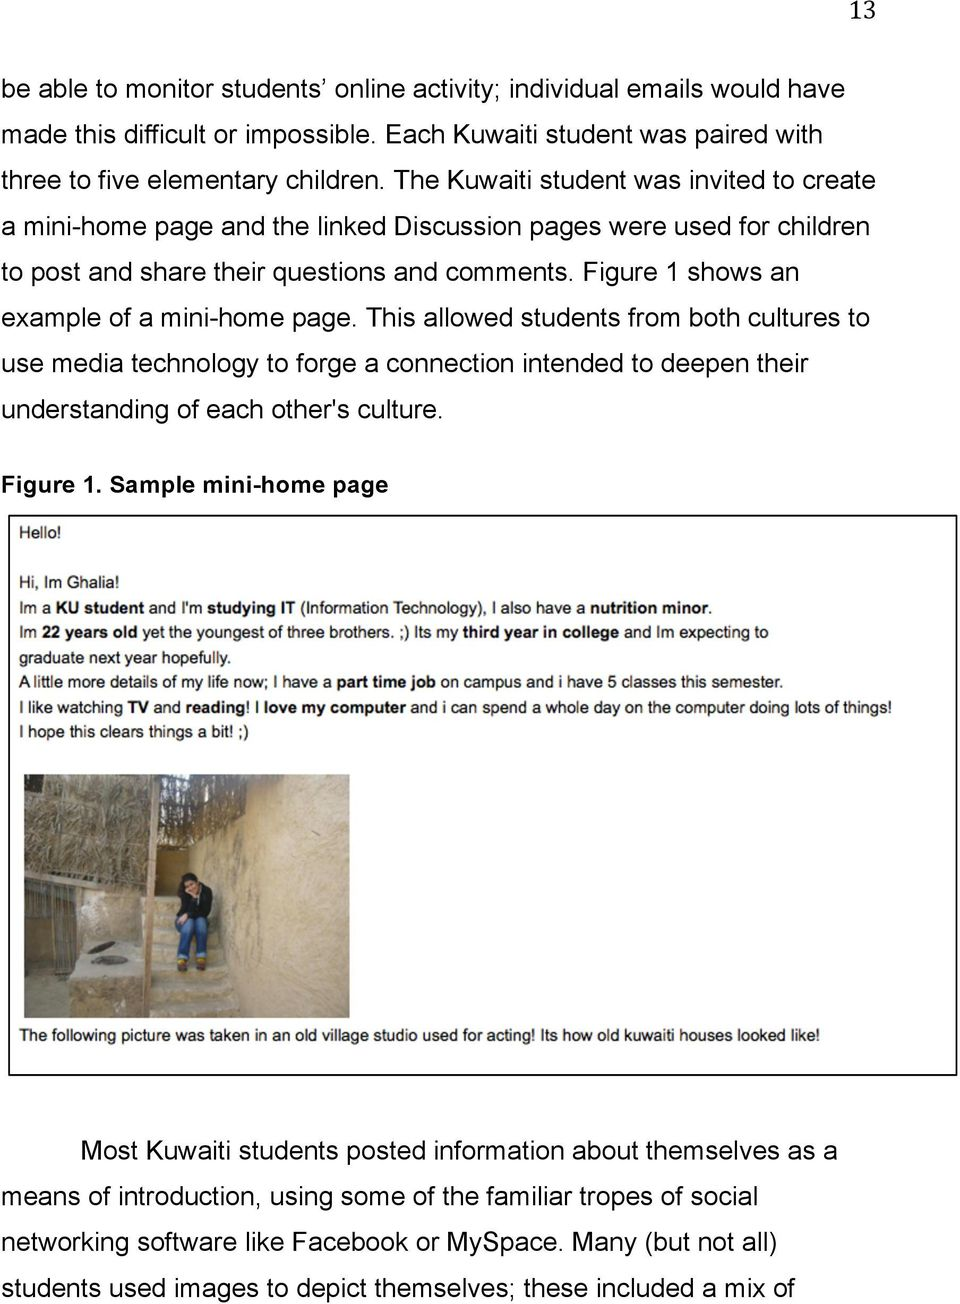 Figure 1 shows an example of a mini-home page. This allowed students from both cultures to use media technology to forge a connection intended to deepen their understanding of each other's culture.